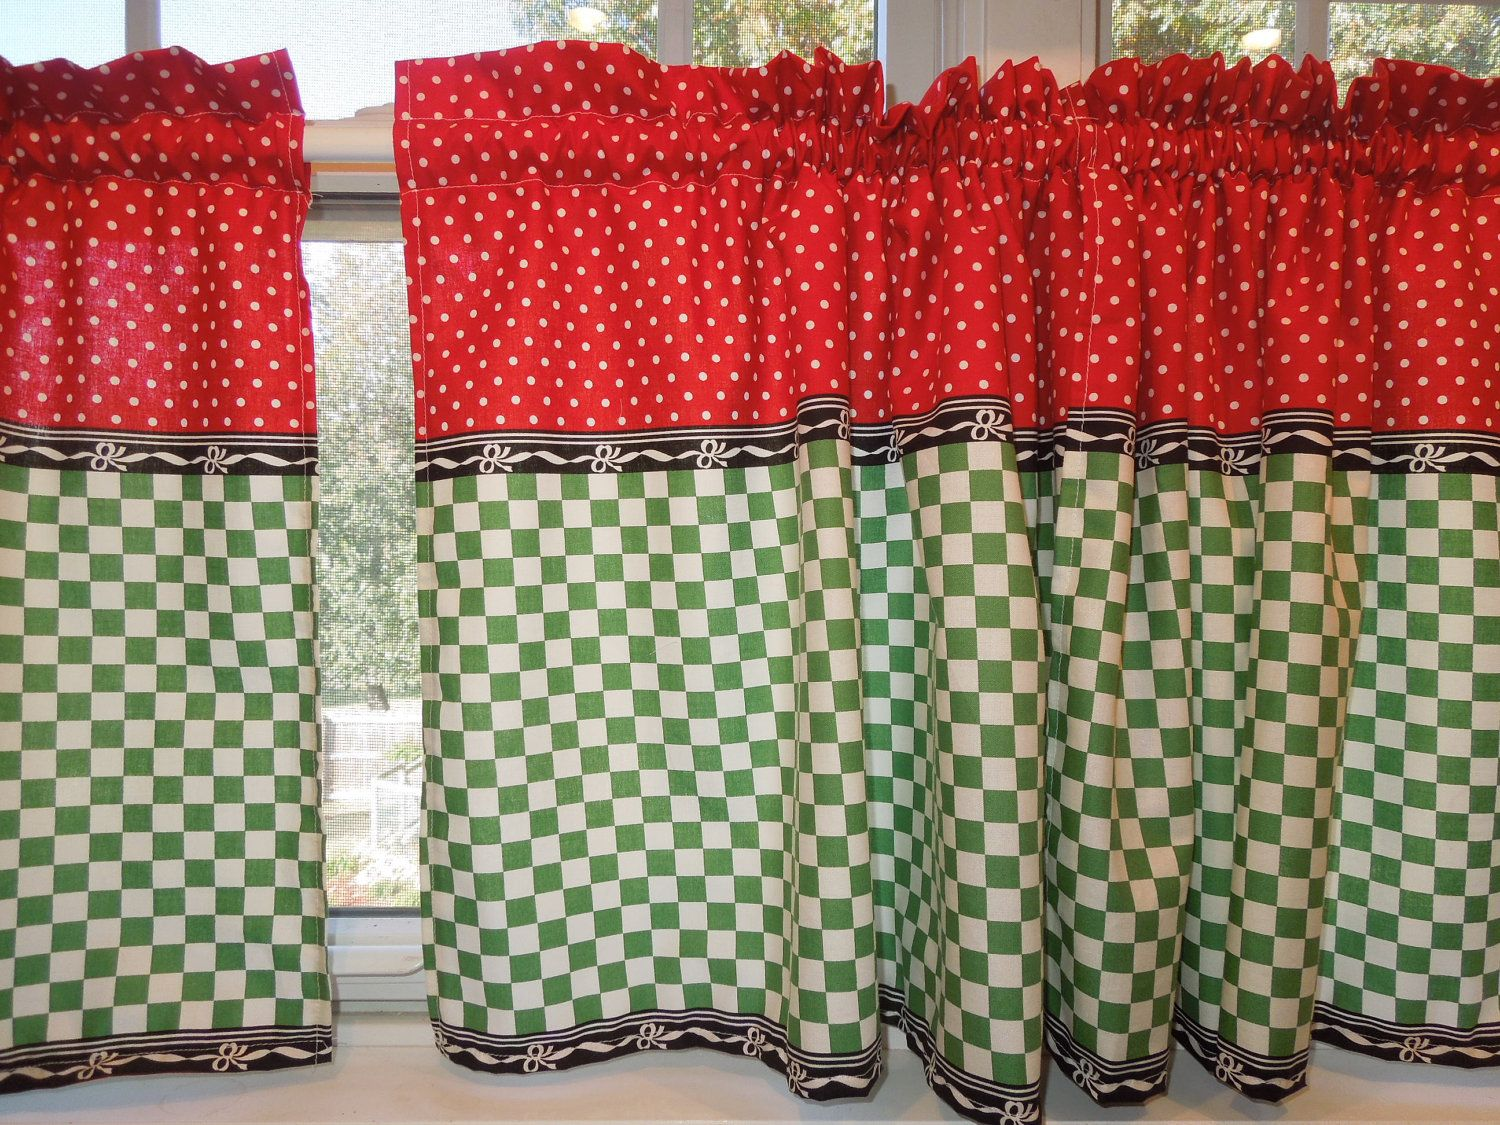 50s Style Diner Kitchens Retro Kitchen Curtains 1950s Four Panels Red Green